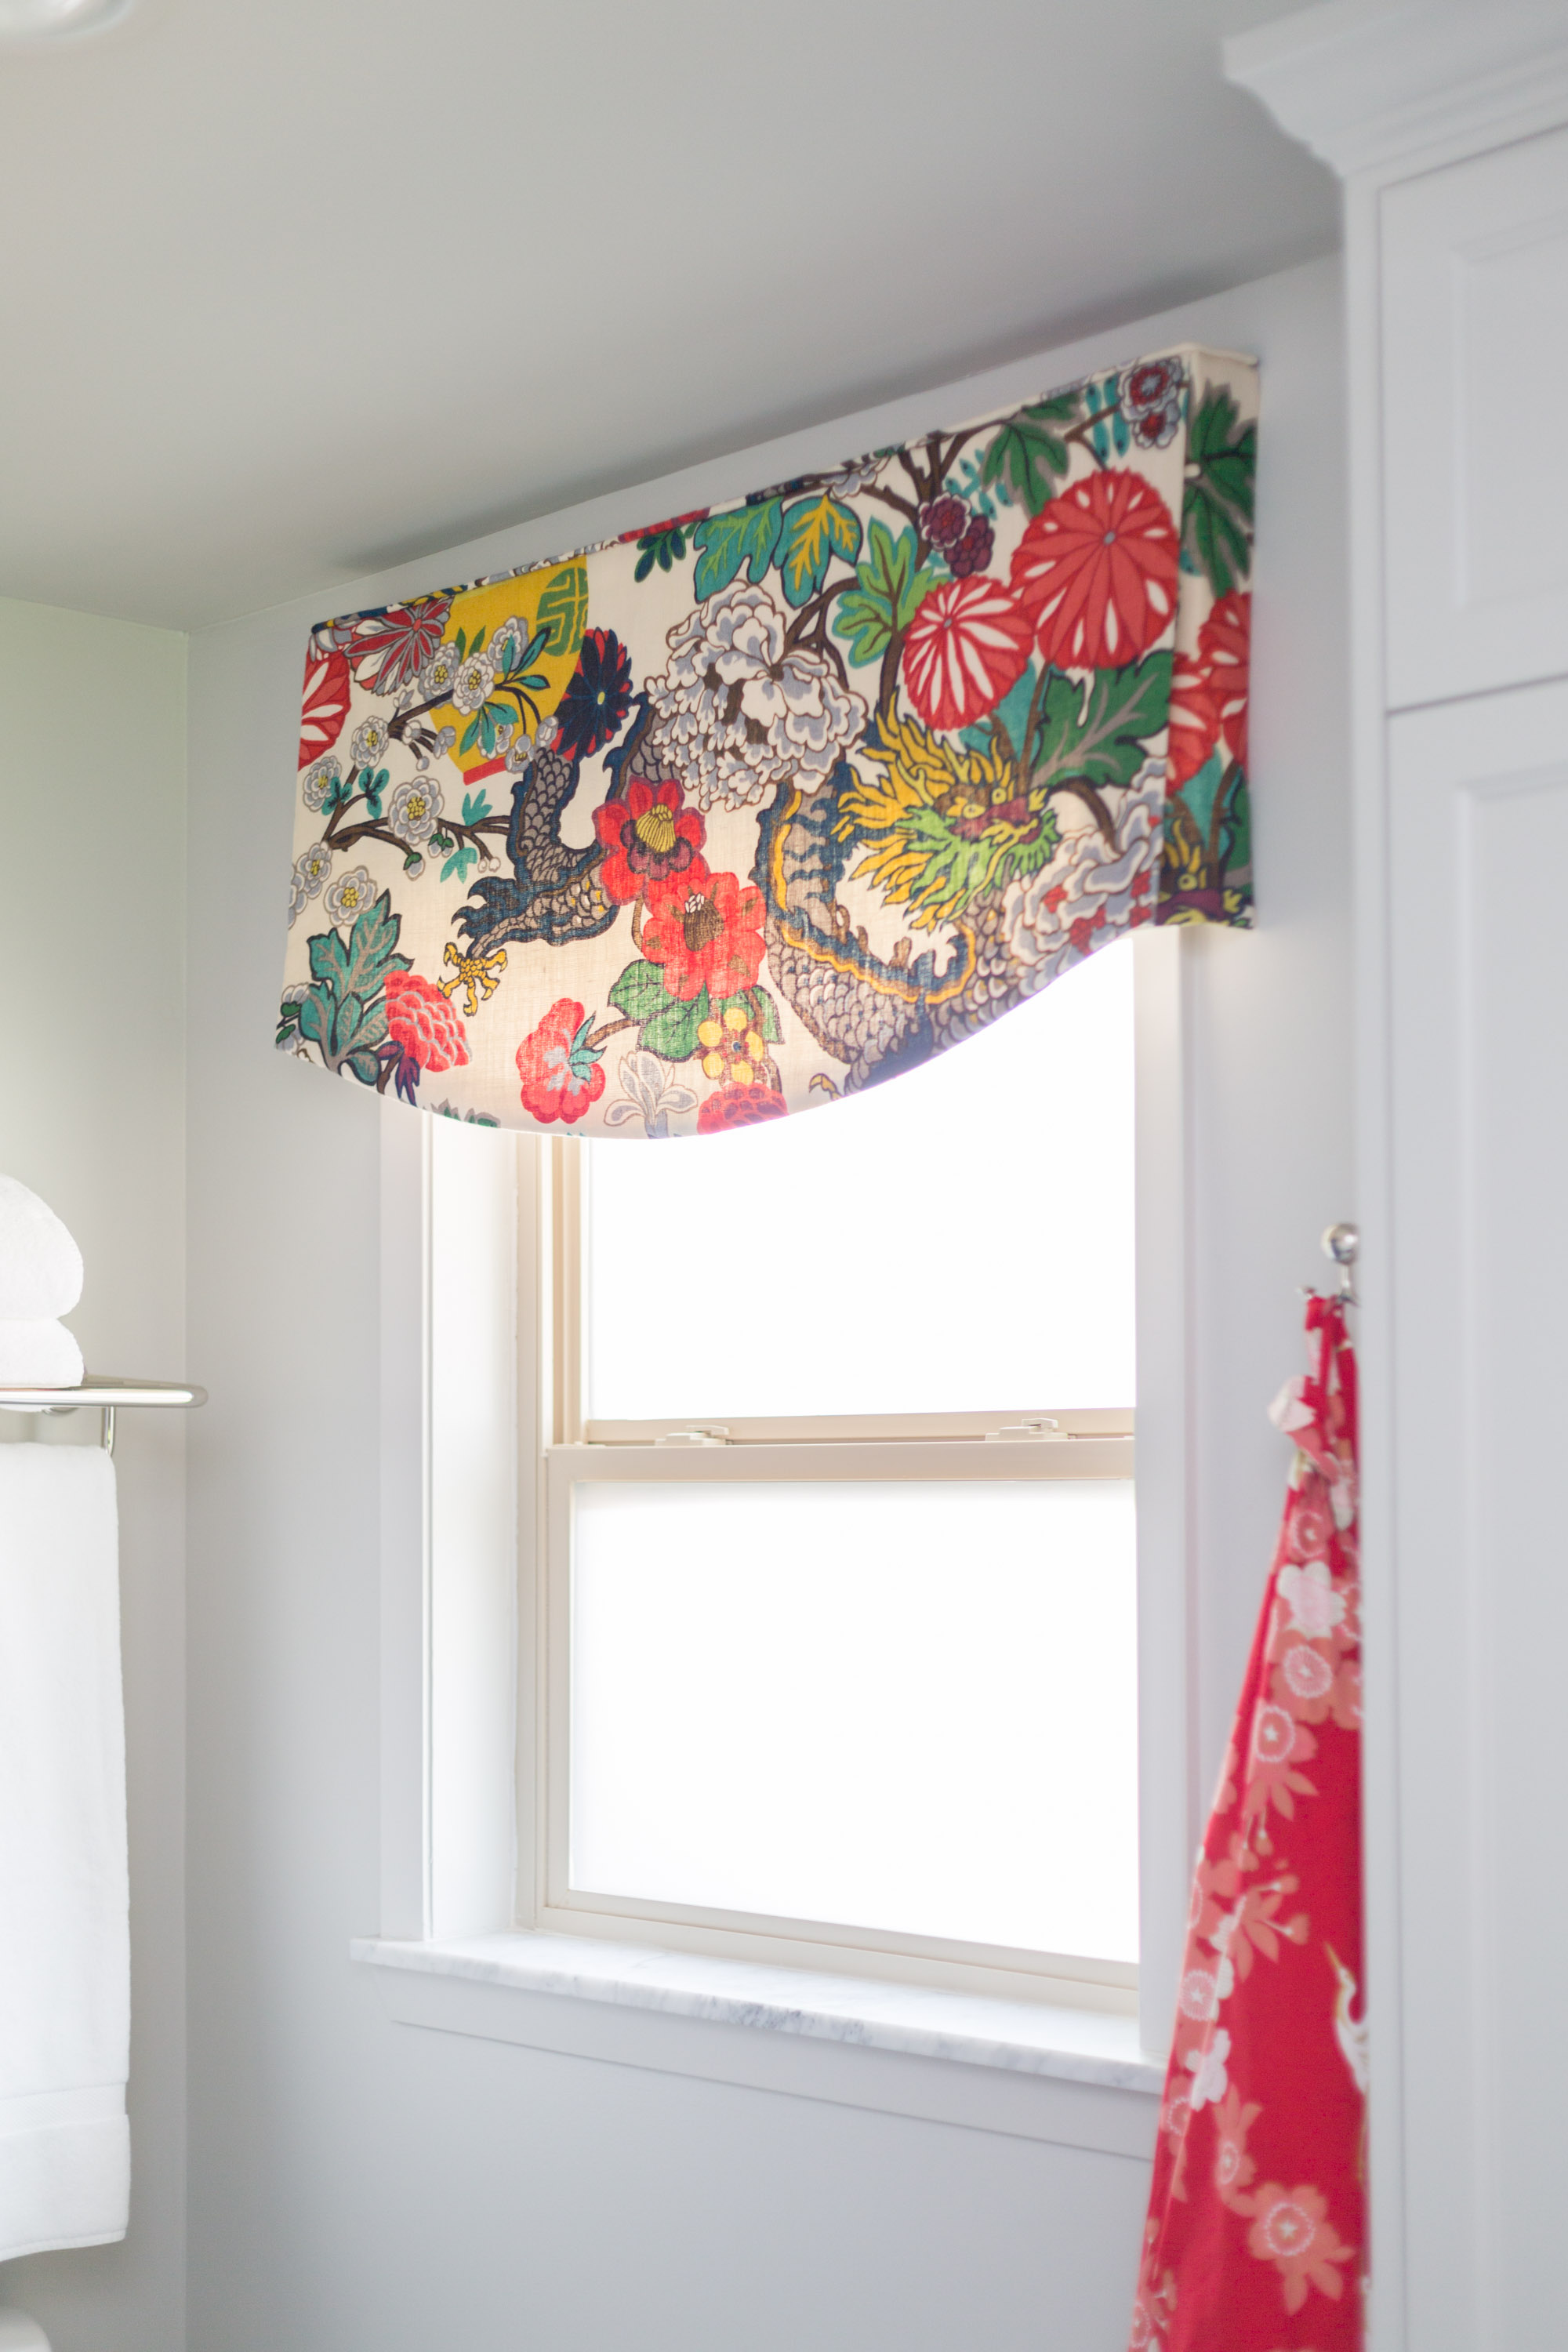 Schumacher Chiang Mai fabric valance at window | Carla Aston, Designer | Tori Aston, Photographer